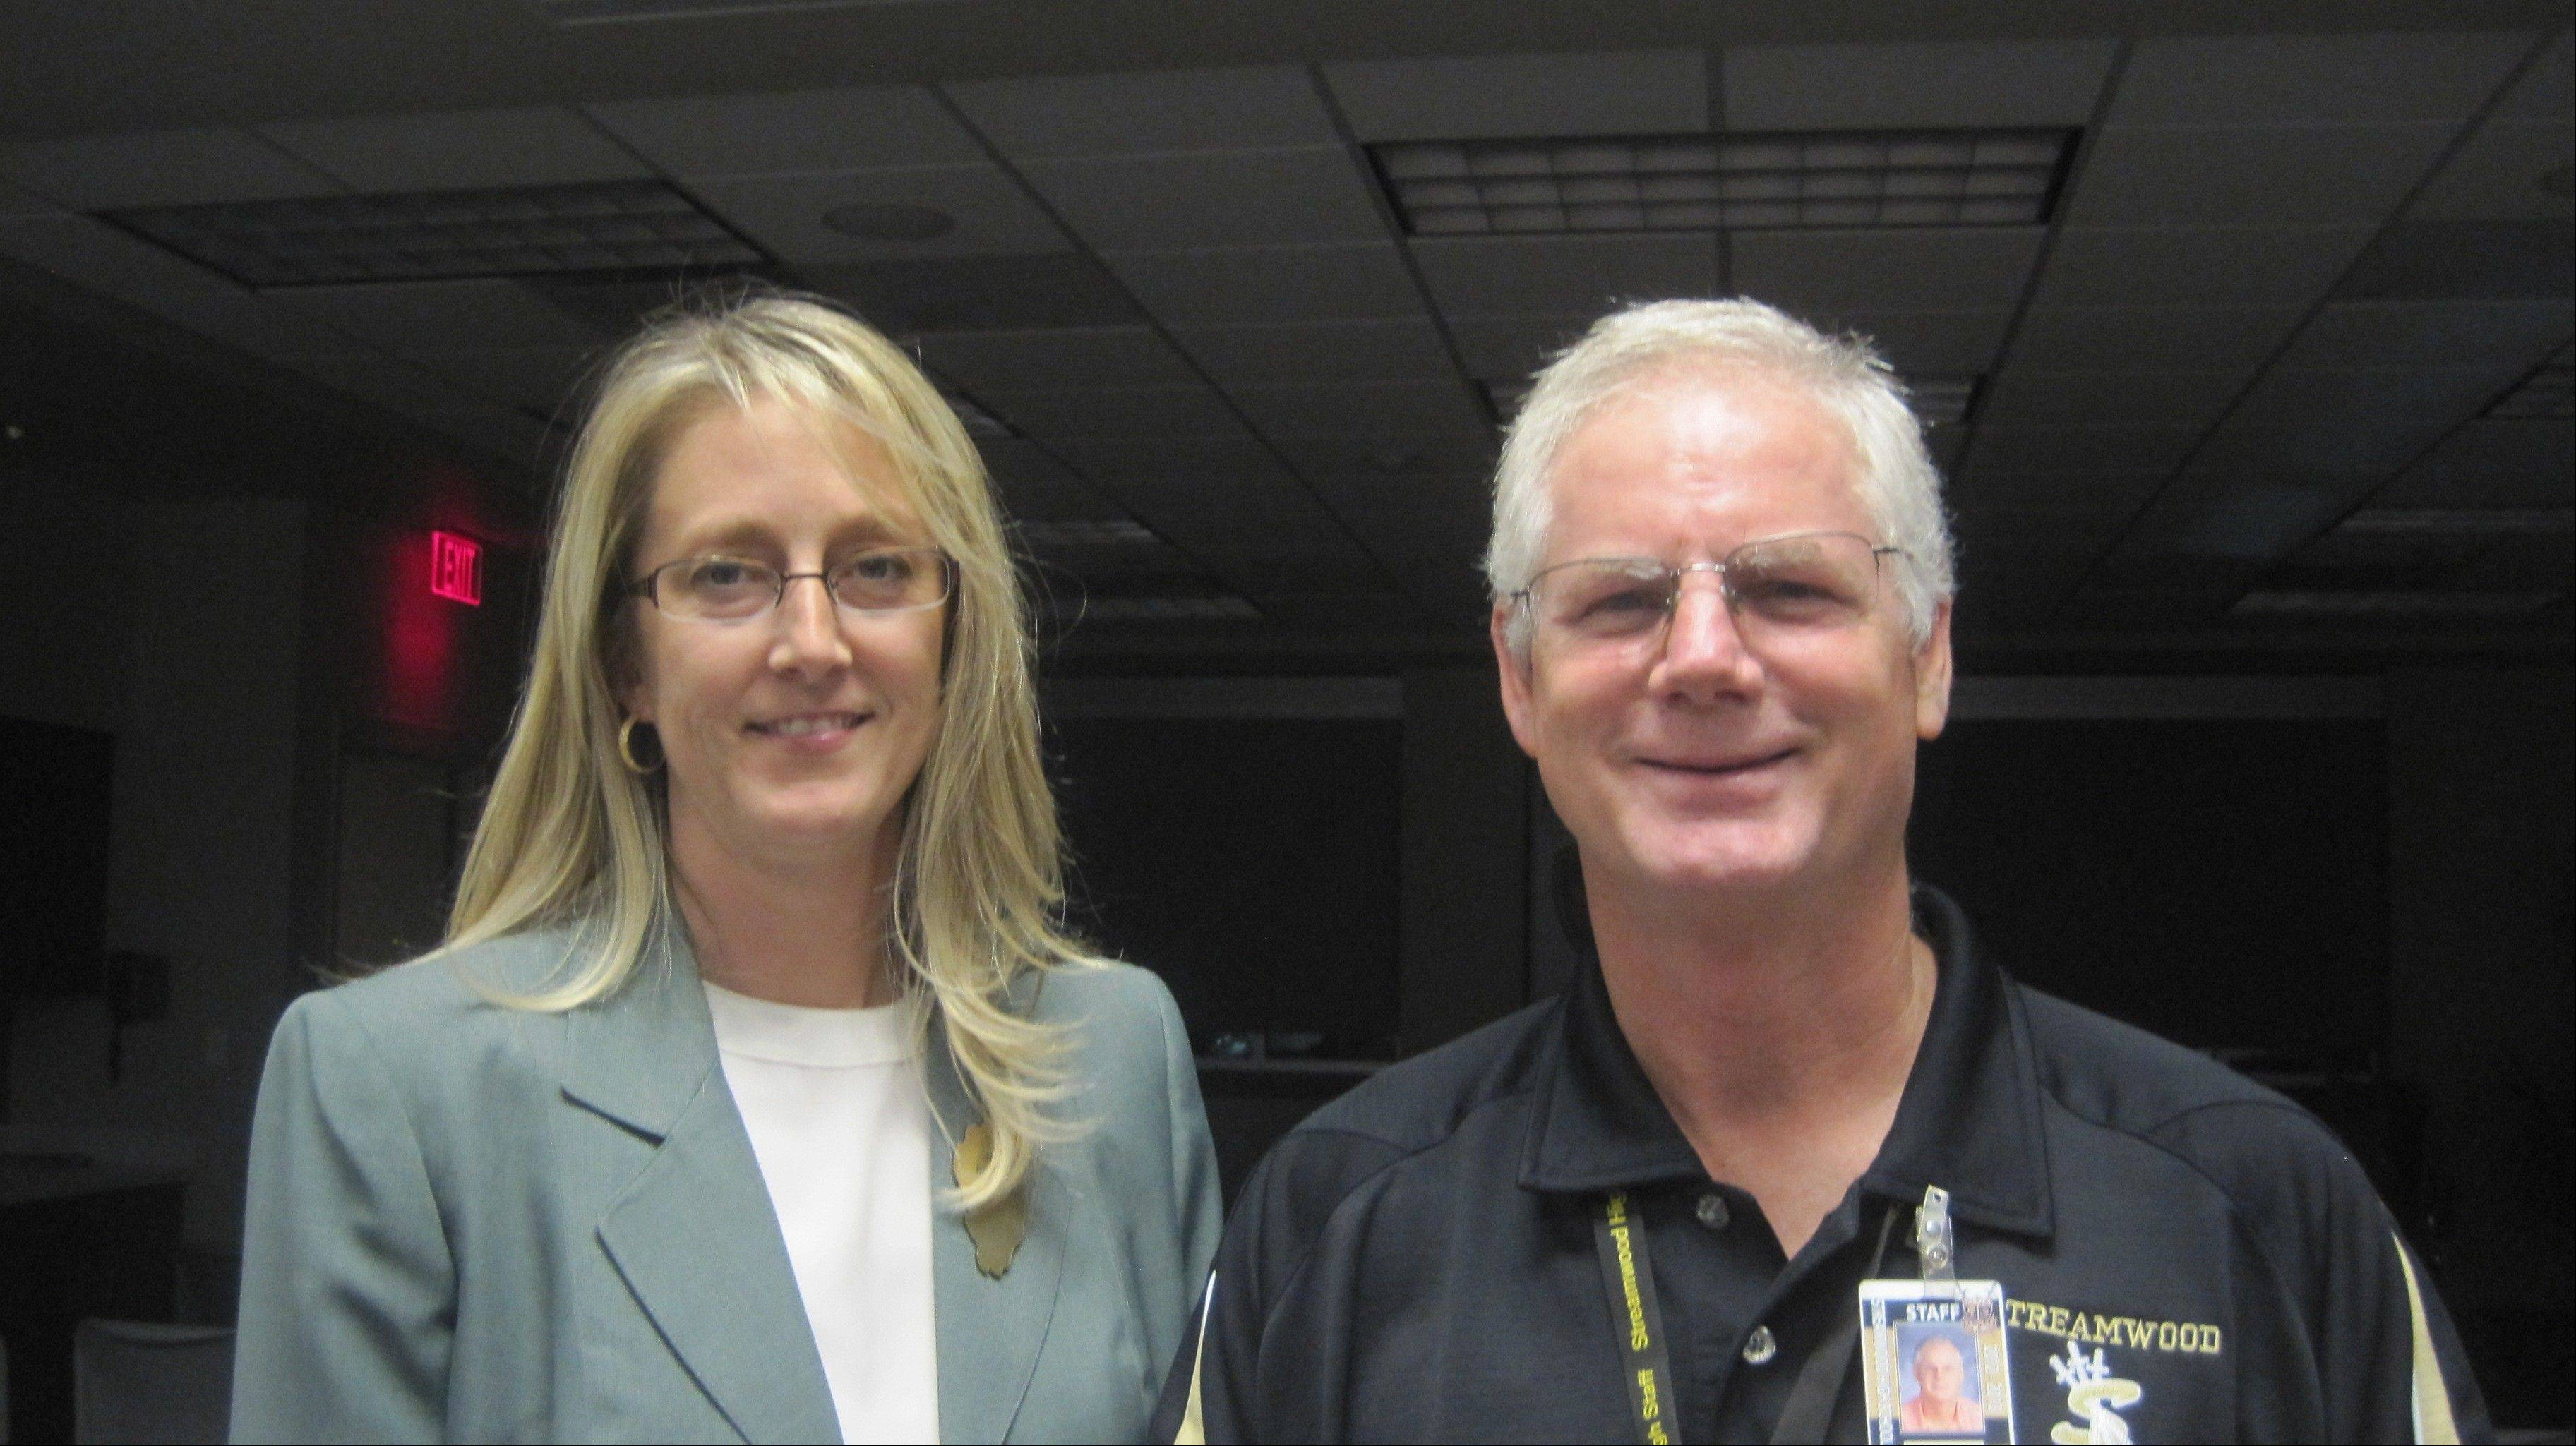 Streamwood Woman's Club member Julie Becker along with Larry Winters of the Streamwood High School Drama Program.